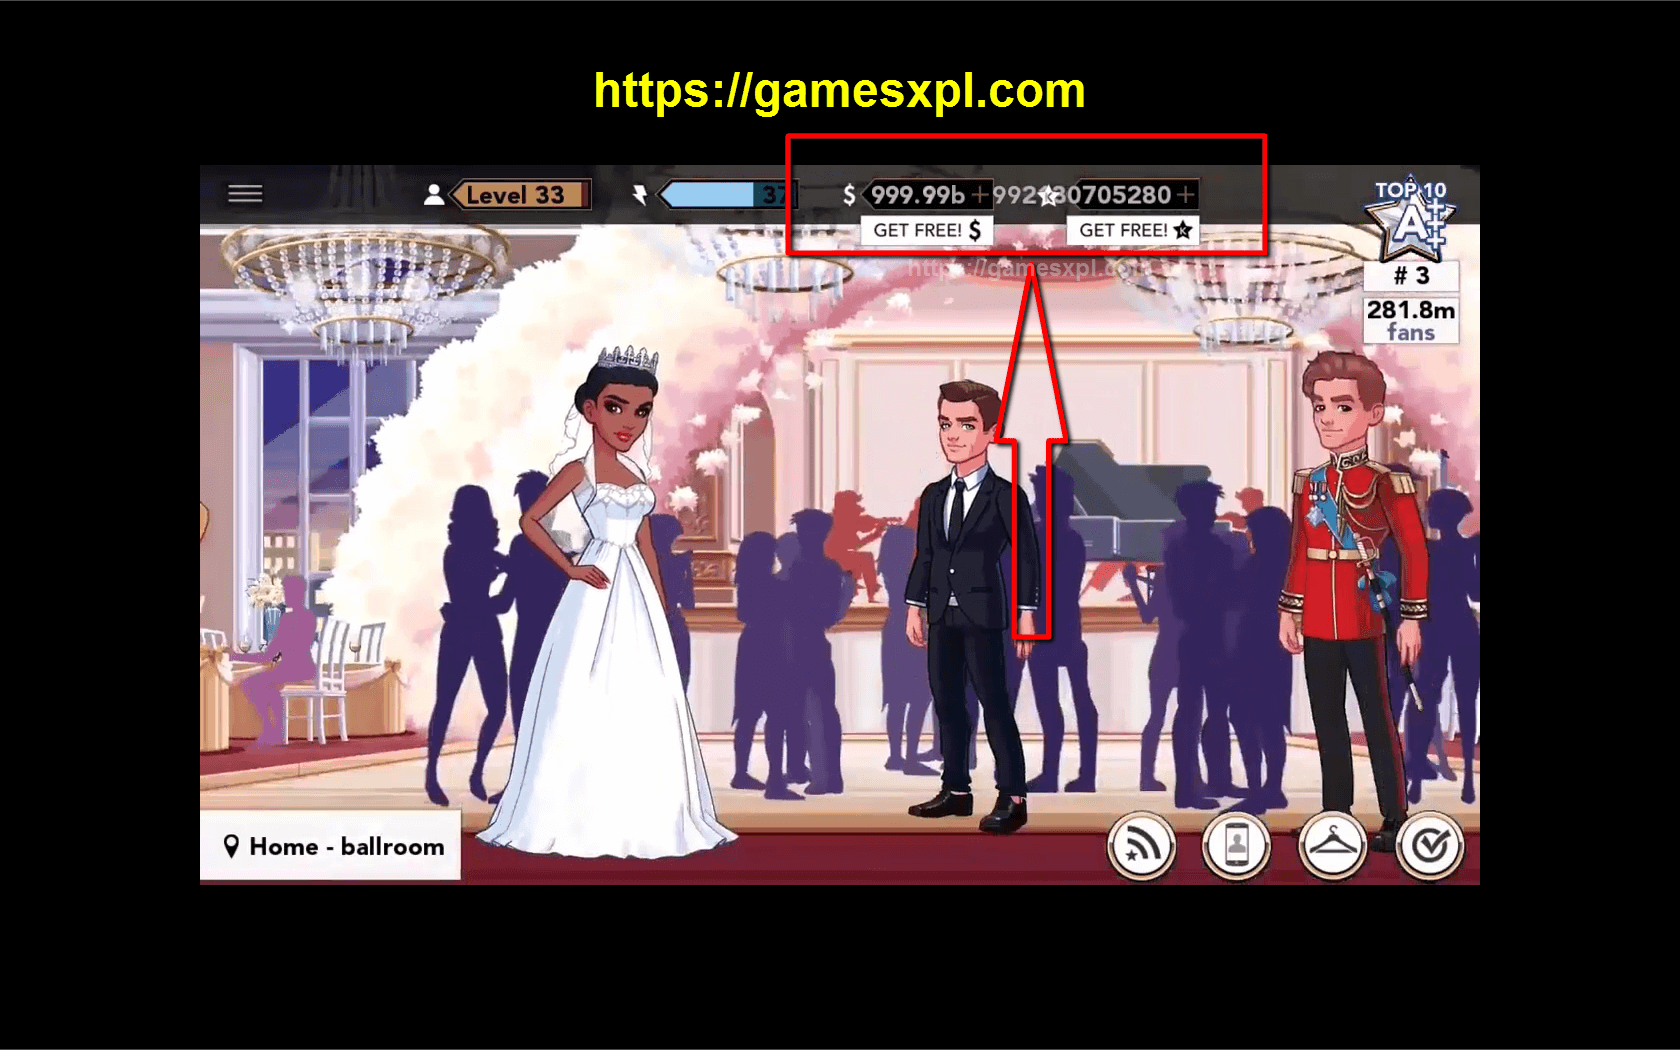 Kim Kardashian Hollywood Hack Mod Apk-How to Get Unlimited Cash and K-Stars-iOS-Android-Windows